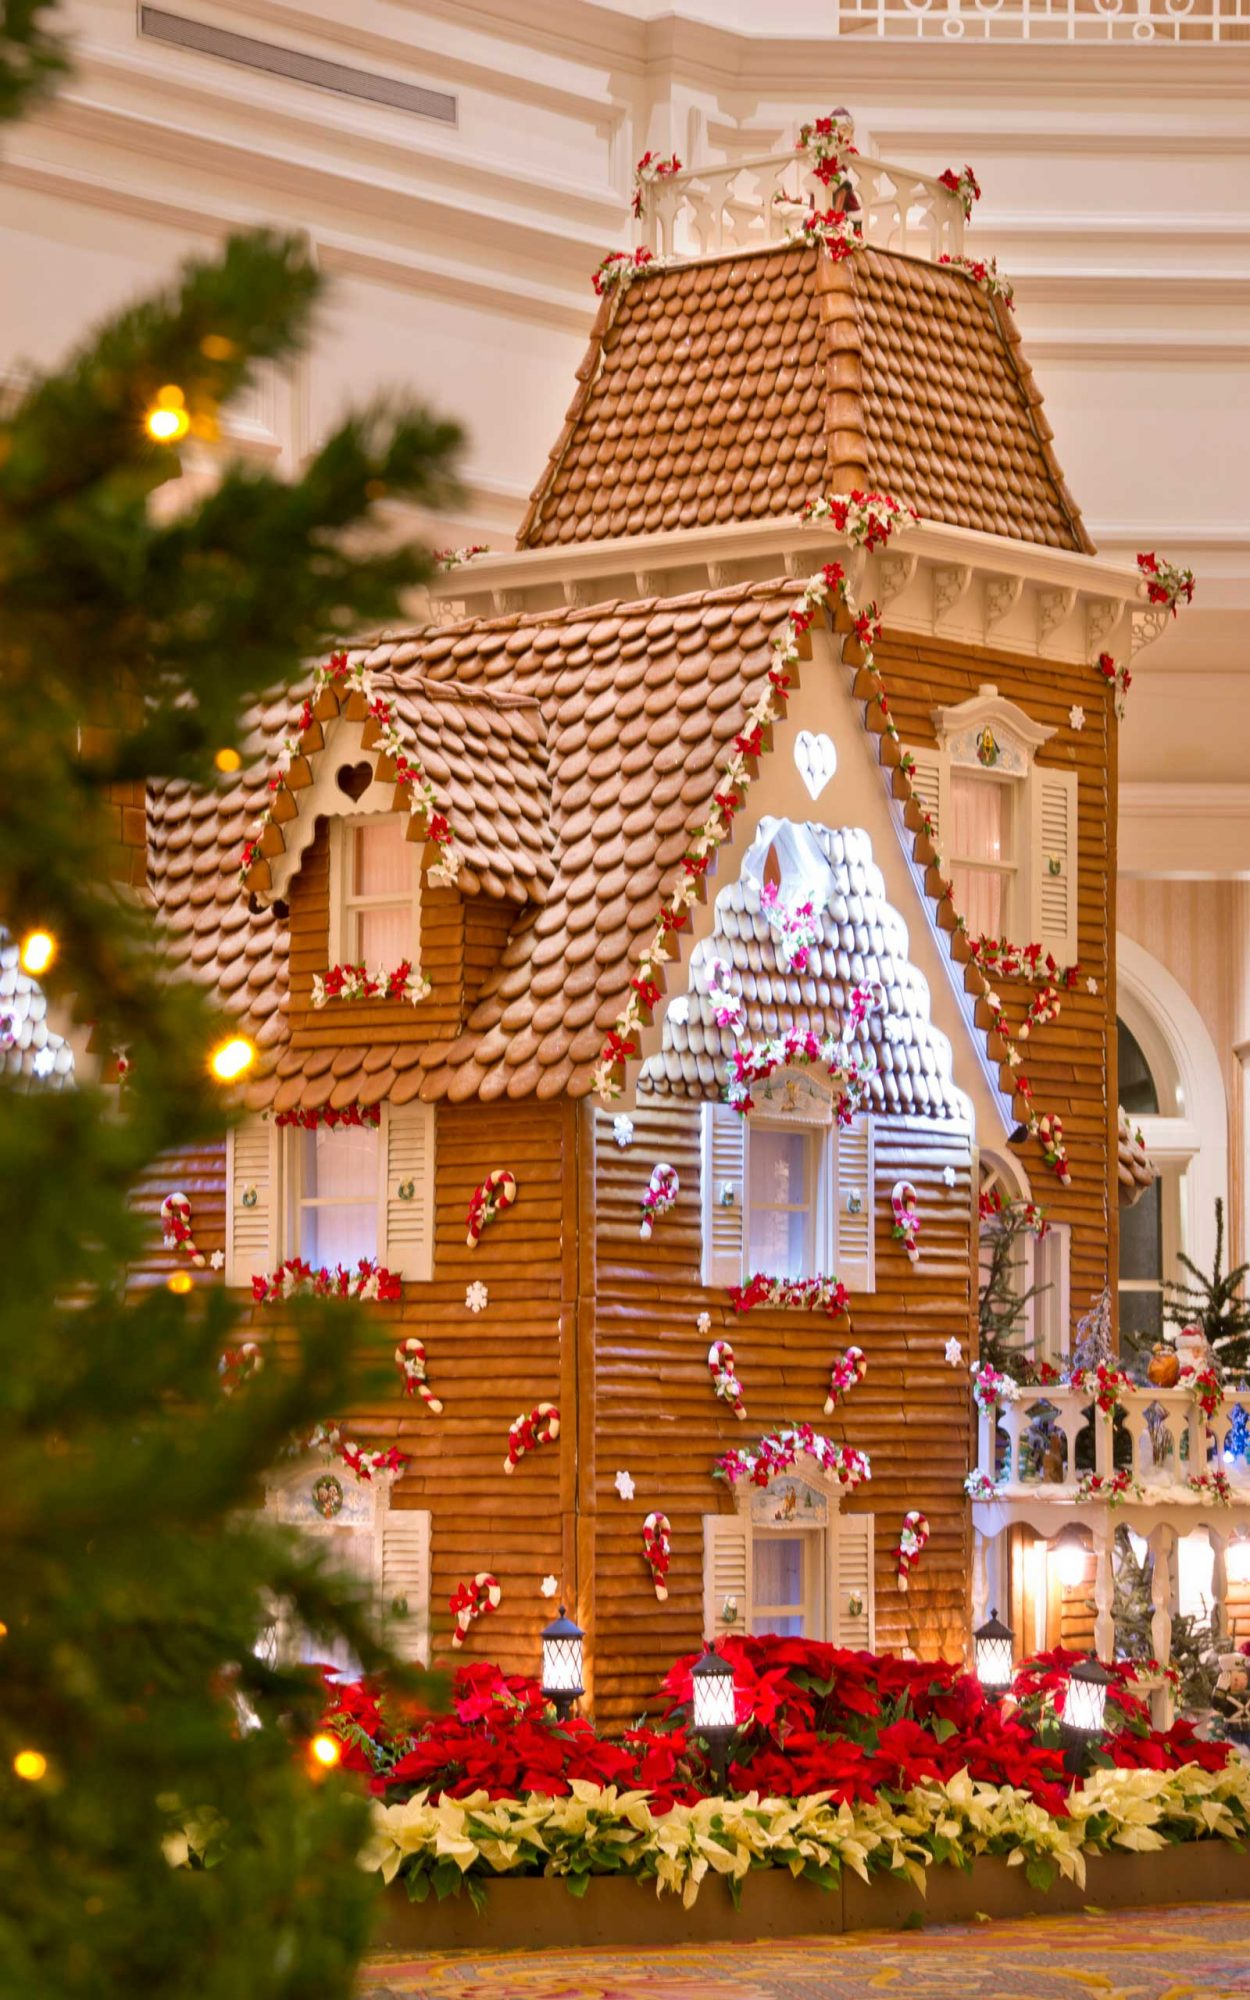 Disney's Grand Floridian Resort & Spa's Gingerbread House on Display for the Holidays